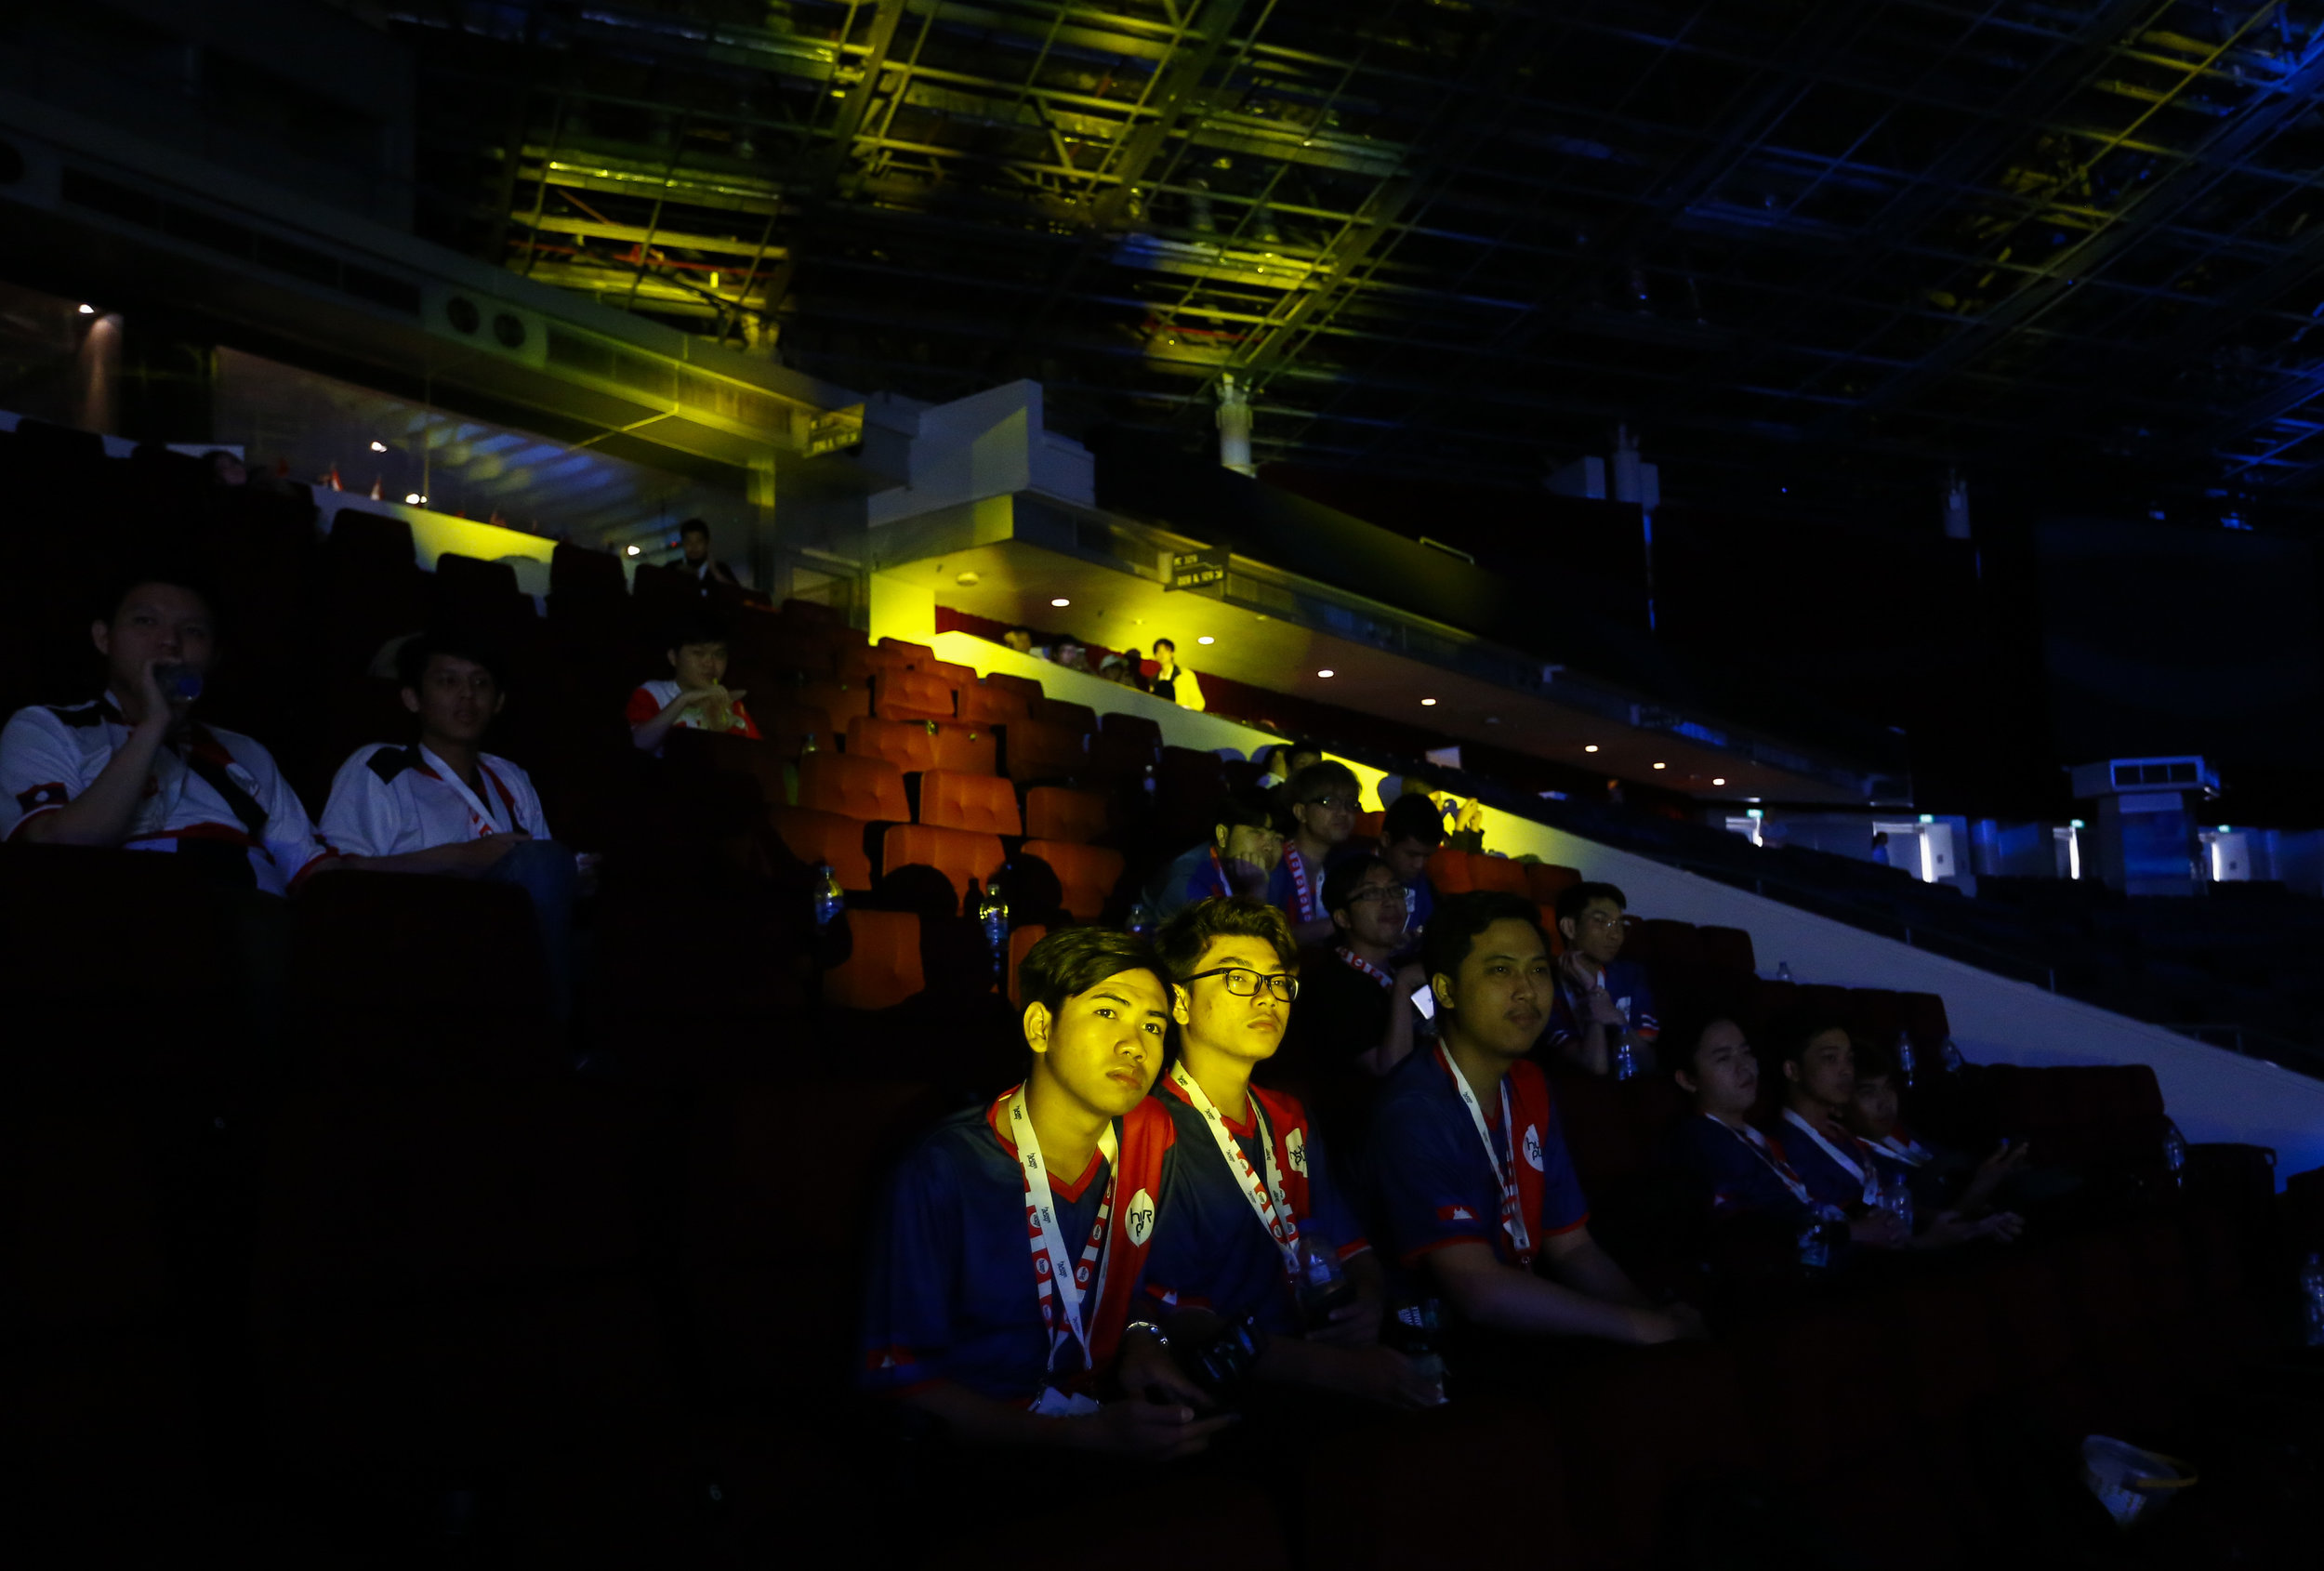 Cambodian League of Legends players watch Hyperplay, an e-sports tournament held in Singapore, August 4, 2018. REUTERS/Feline Lim